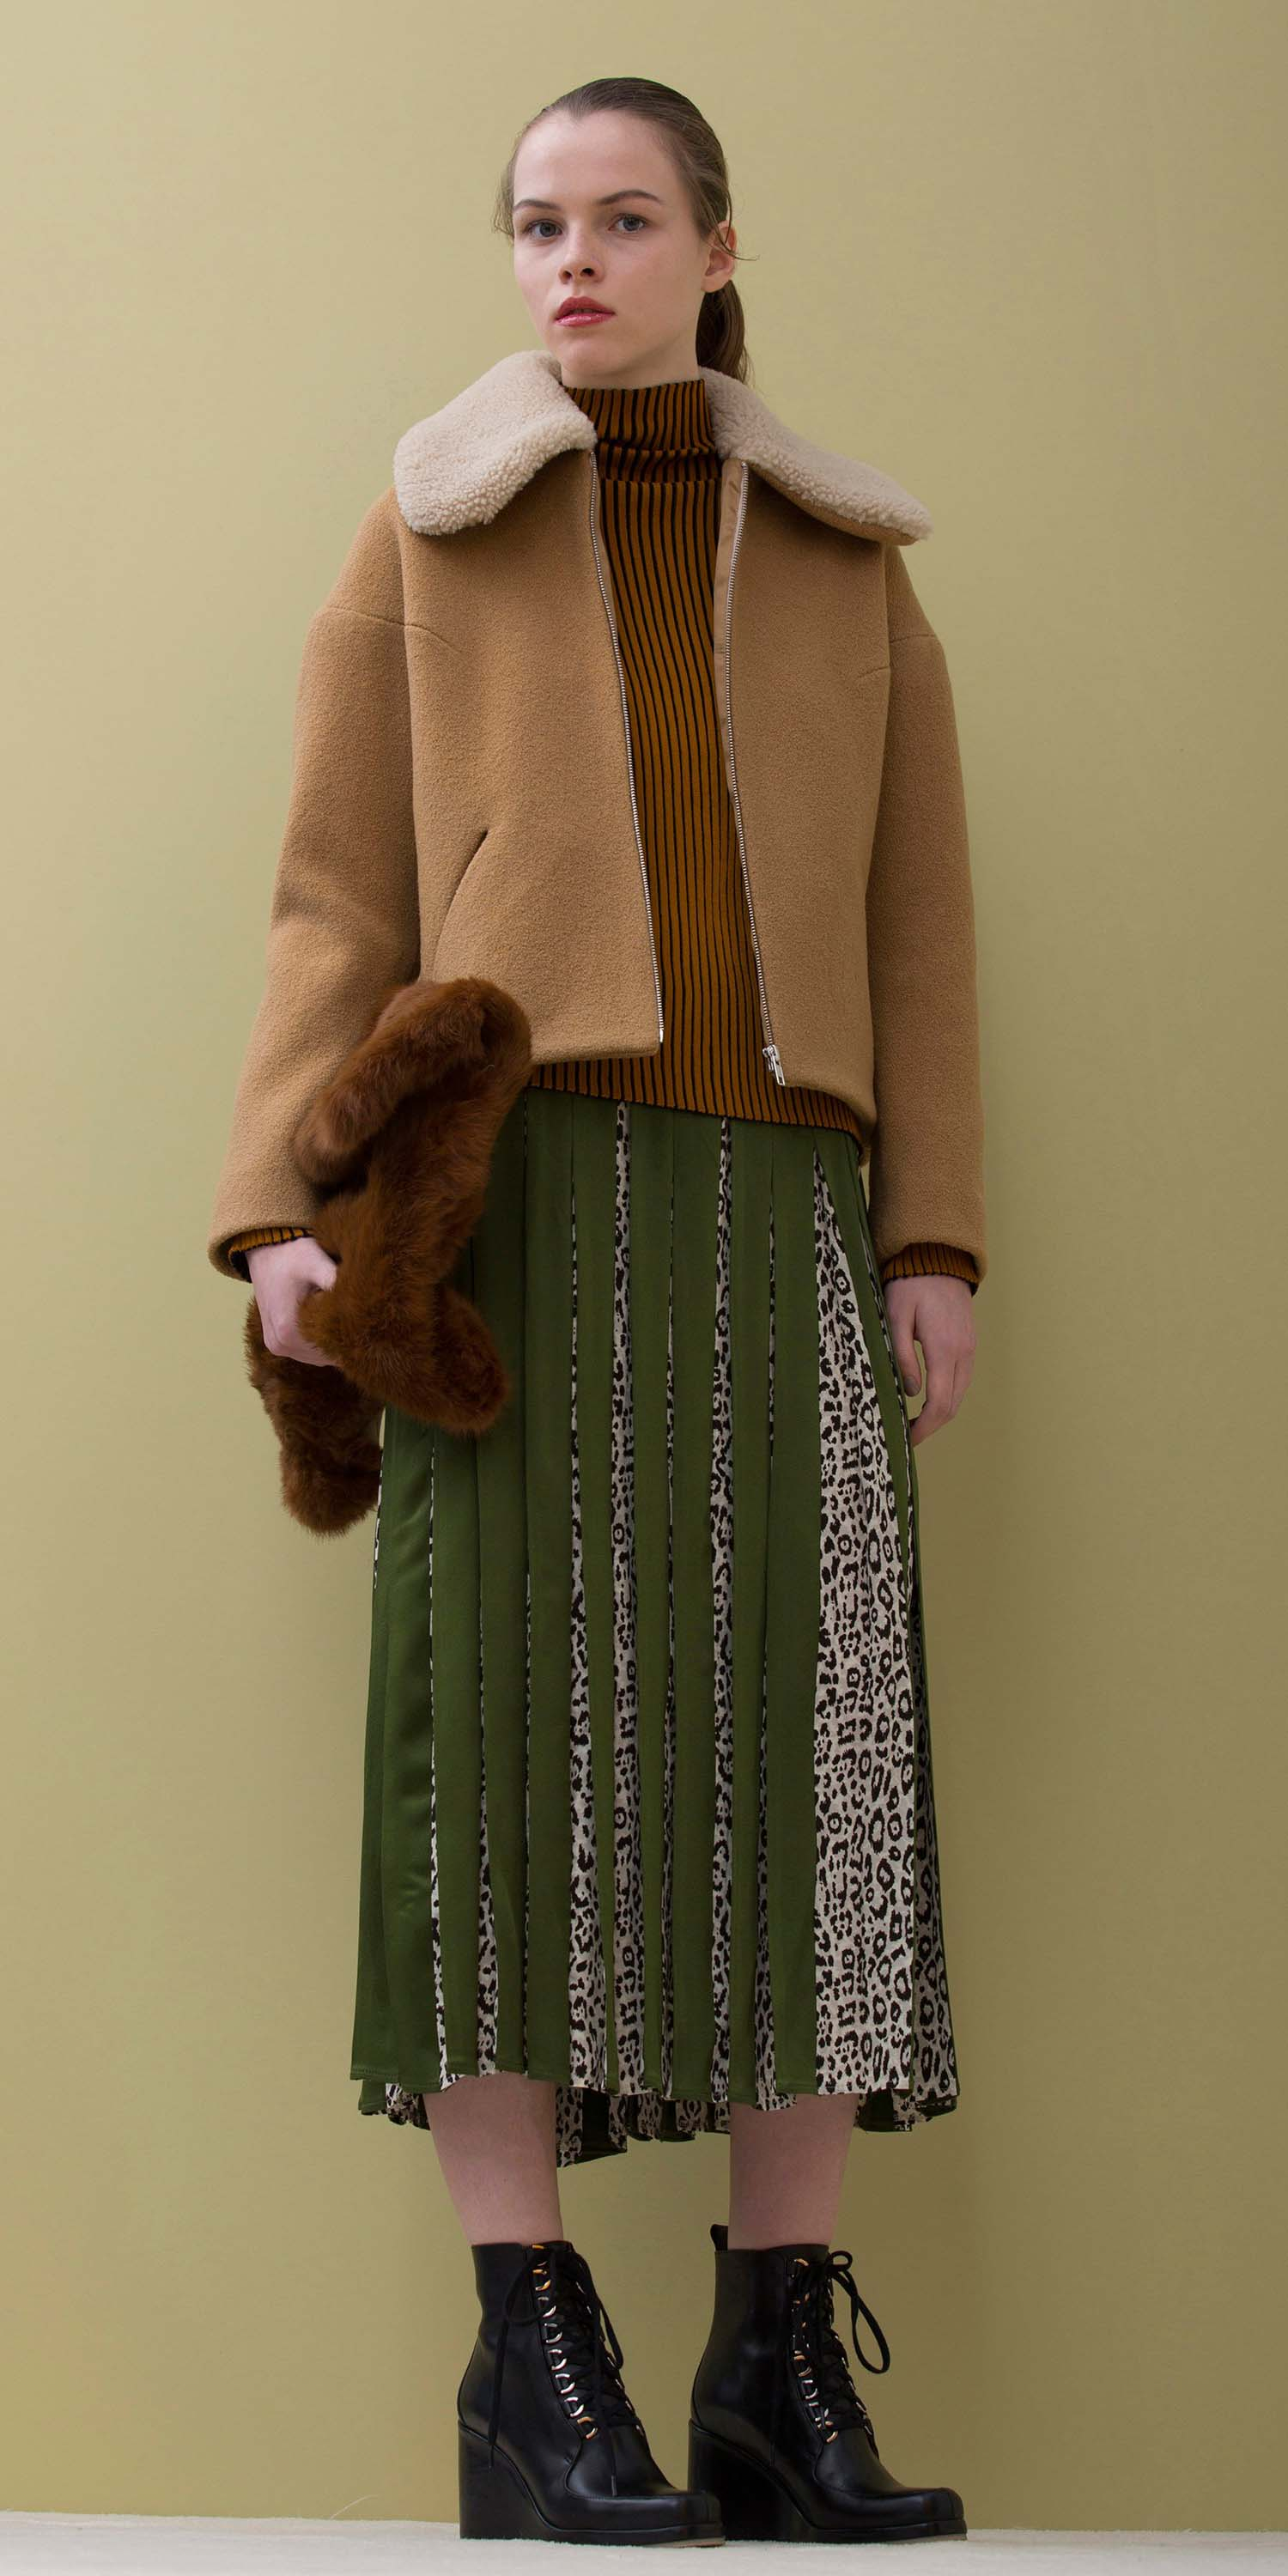 green-olive-midi-skirt-camel-sweater-turtleneck-pony-black-shoe-booties-camel-jacket-coat-fall-winter-hairr-lunch.jpg